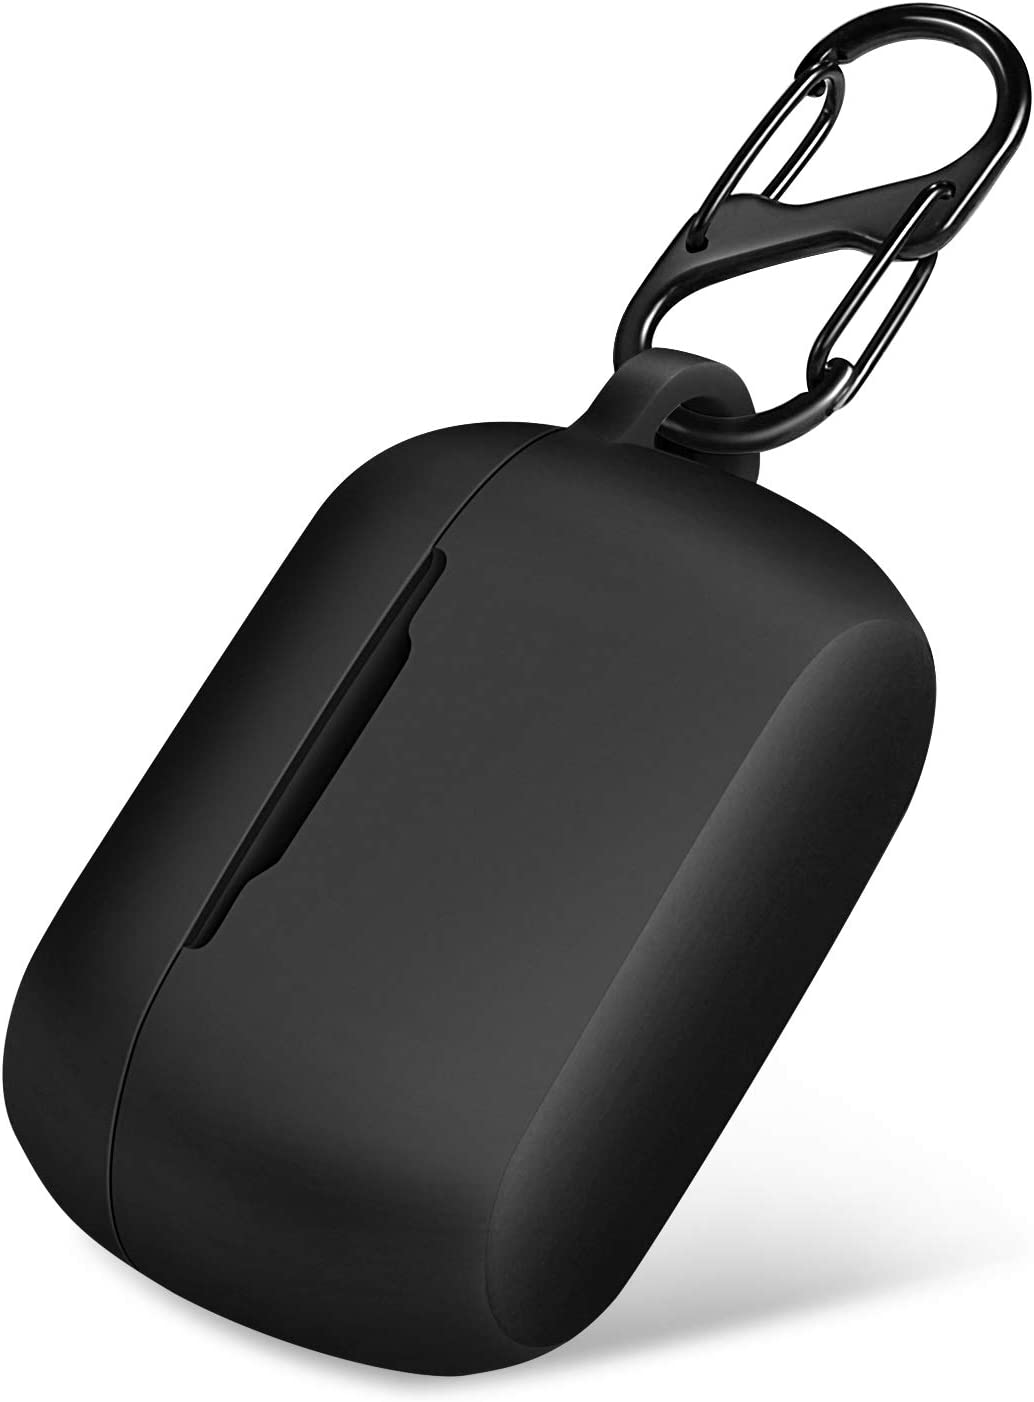 Protective Silicone Cover for Jabra Elite (Active) 75t Charging Case, Portable Carrying Cases with Carabiner Keychain (75t-Black)